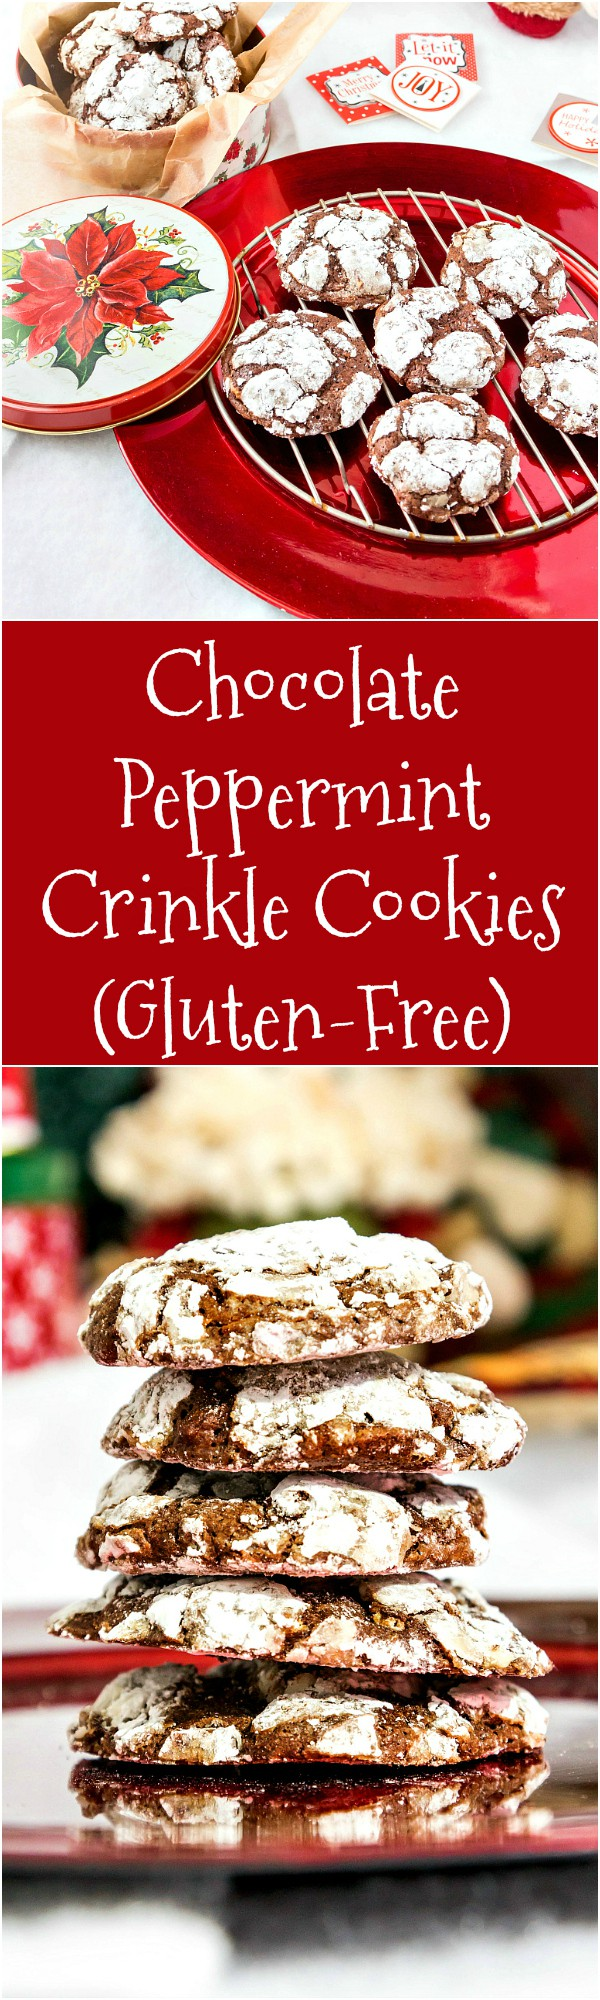 These chocolate peppermint crinkle cookies are the perfect Christmas cookie recipe for almost everyone, including your gluten-free friends and family. Rich and chocolatey with just enough mint flavoring, they're also studded with dark chocolate peppermint bark. These are like chocolate peppermint truffles in cookie form, and you are going to love them! | pastrychefonline.com